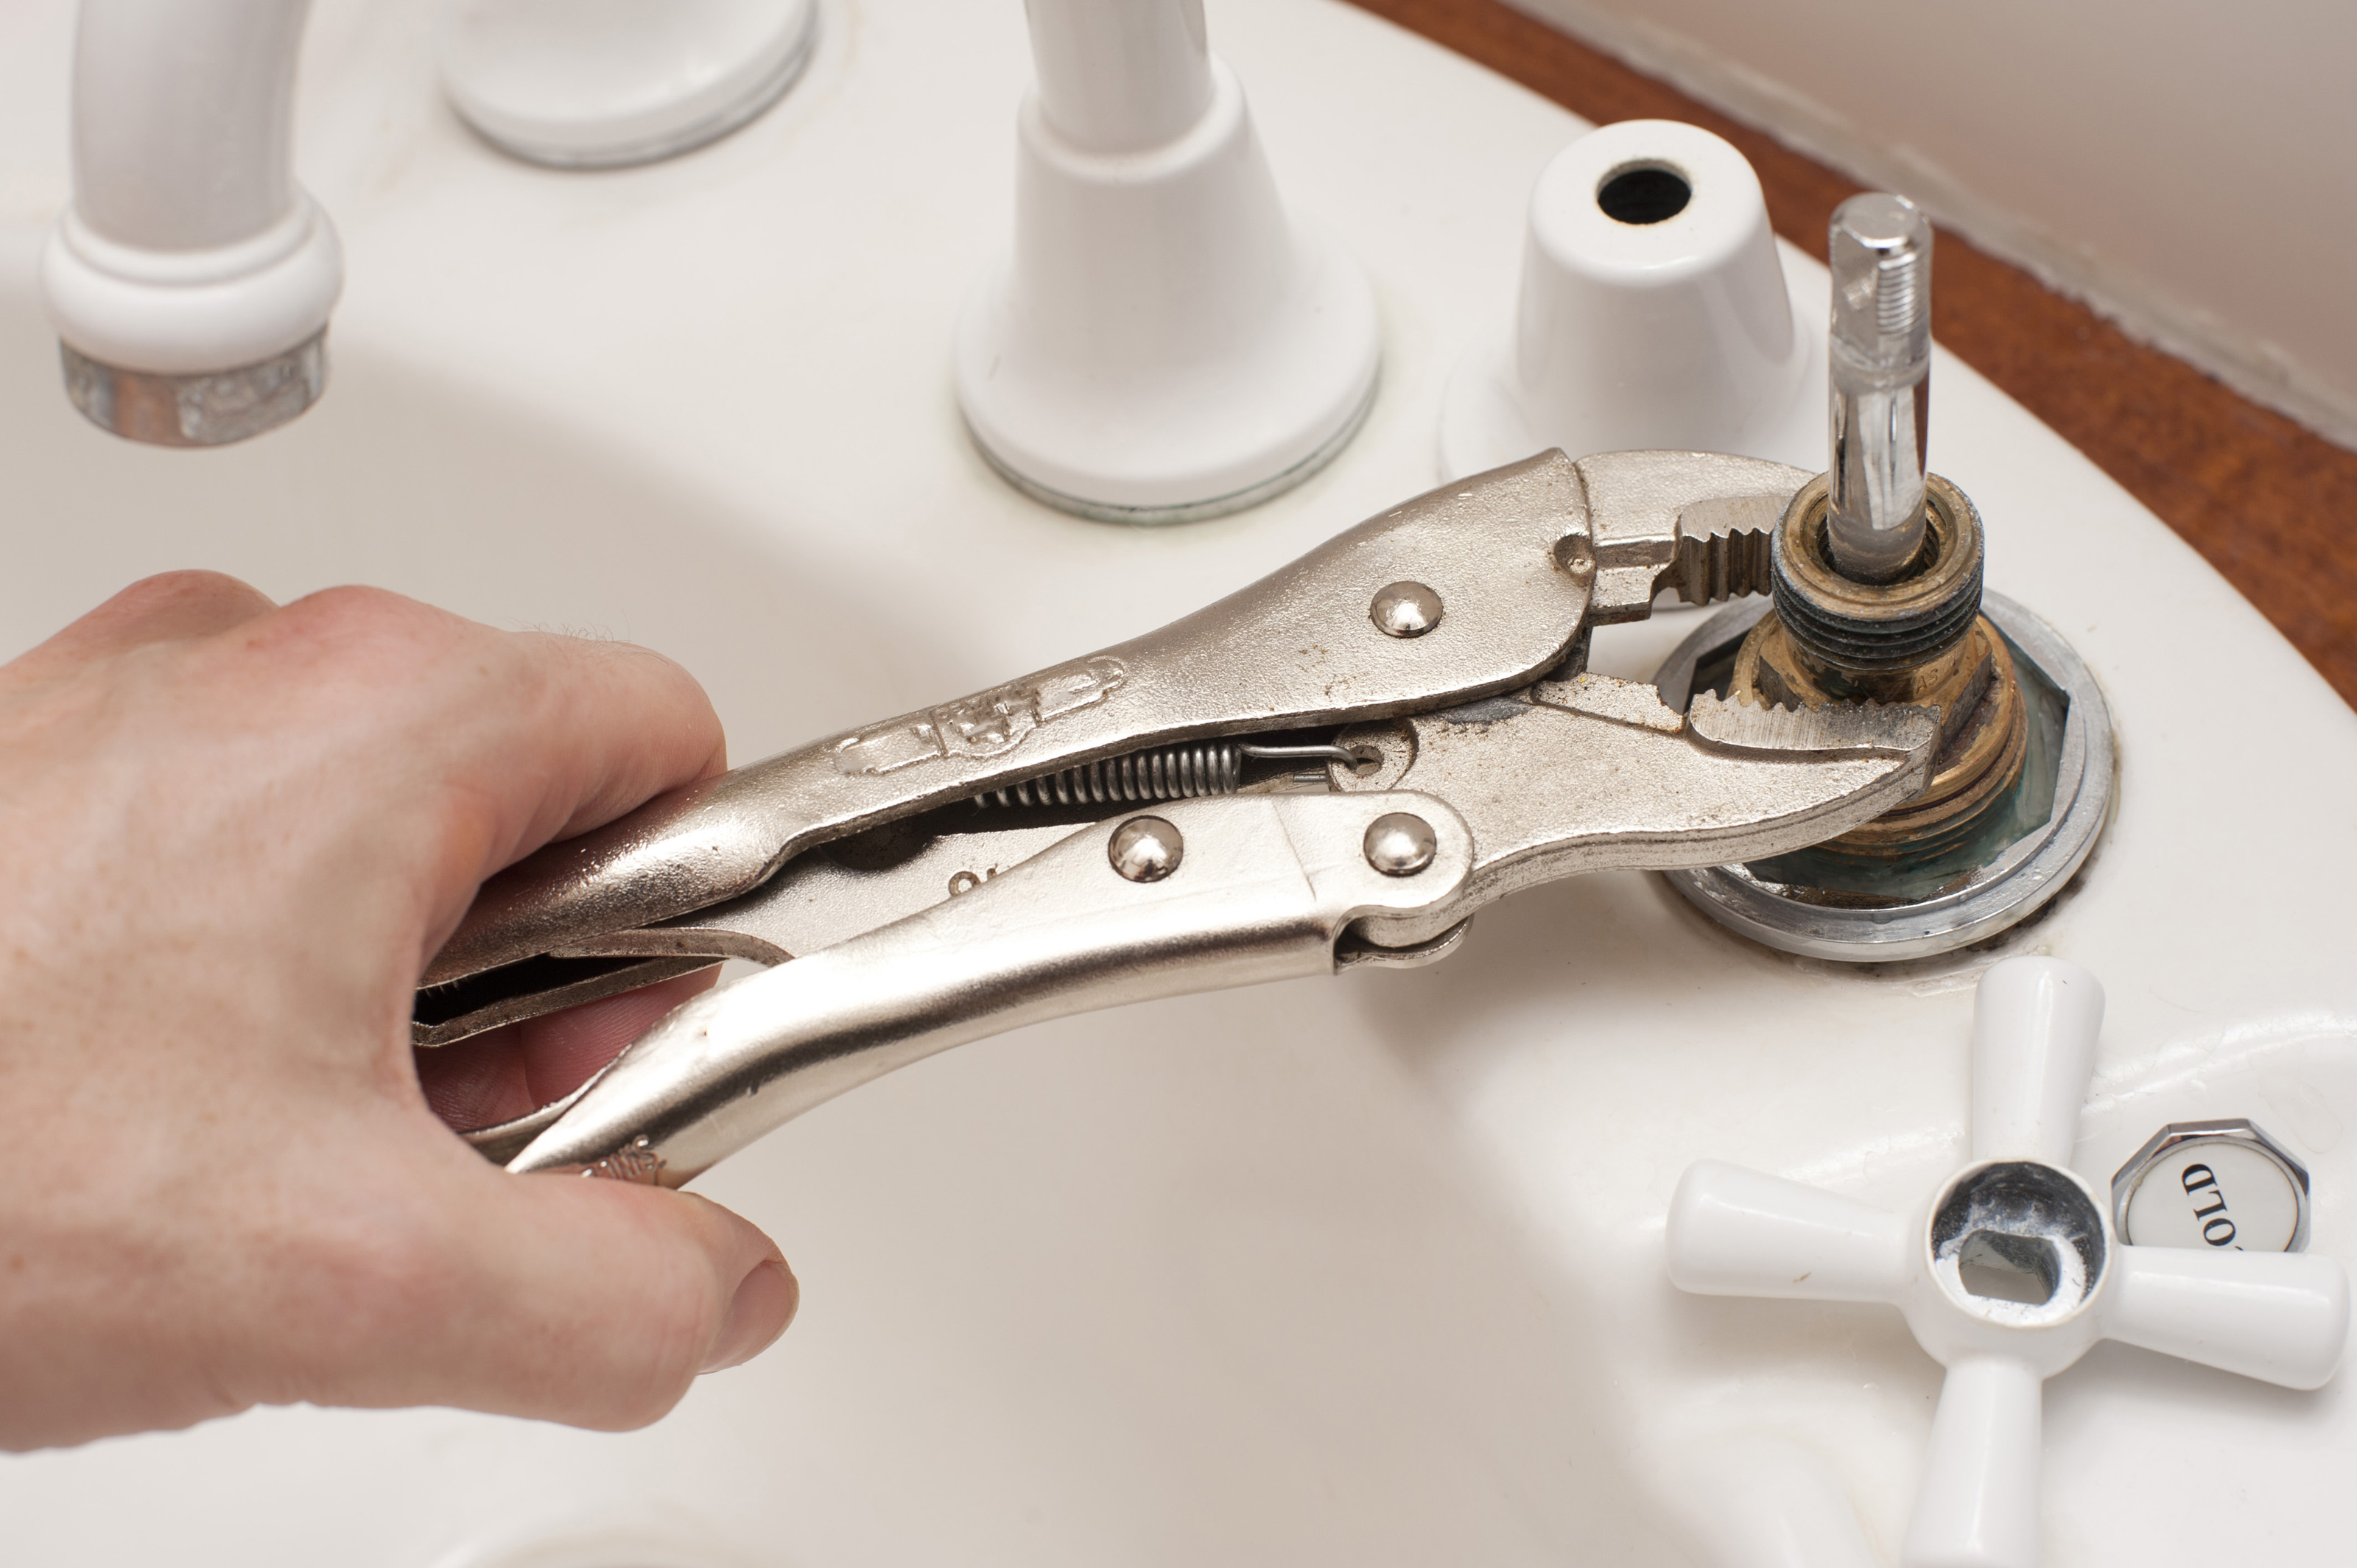 Nice Man Repairing A Broken Faucet Or Tap On A Bathroom Sink Using A Mole Grip  Pliers